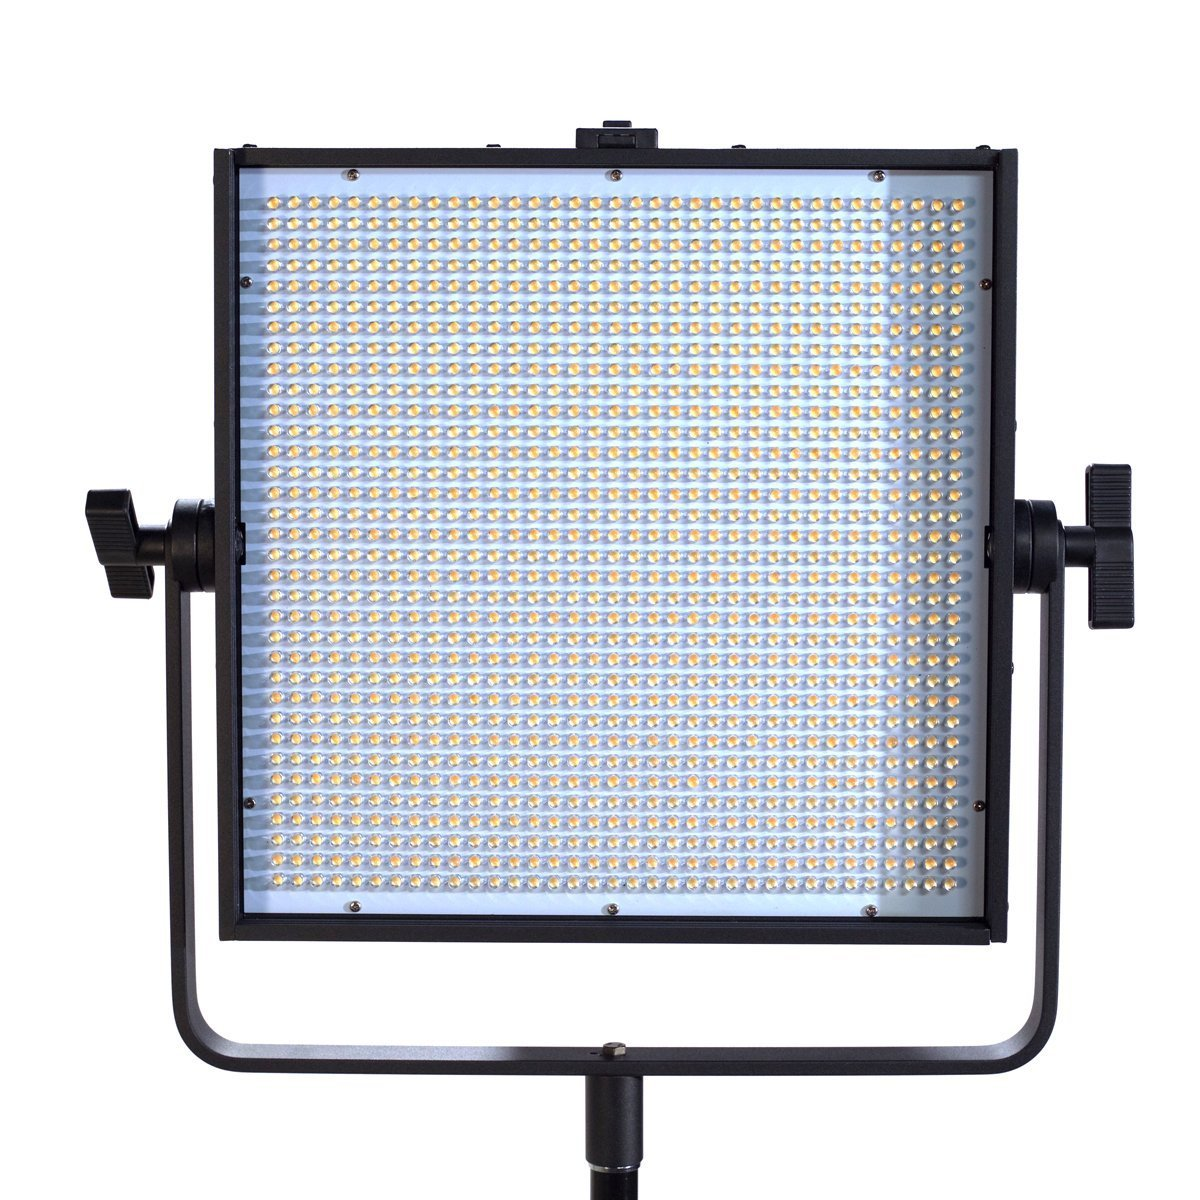 Axrtec AXR-A-1200DV LED Video Panel Light (Black)